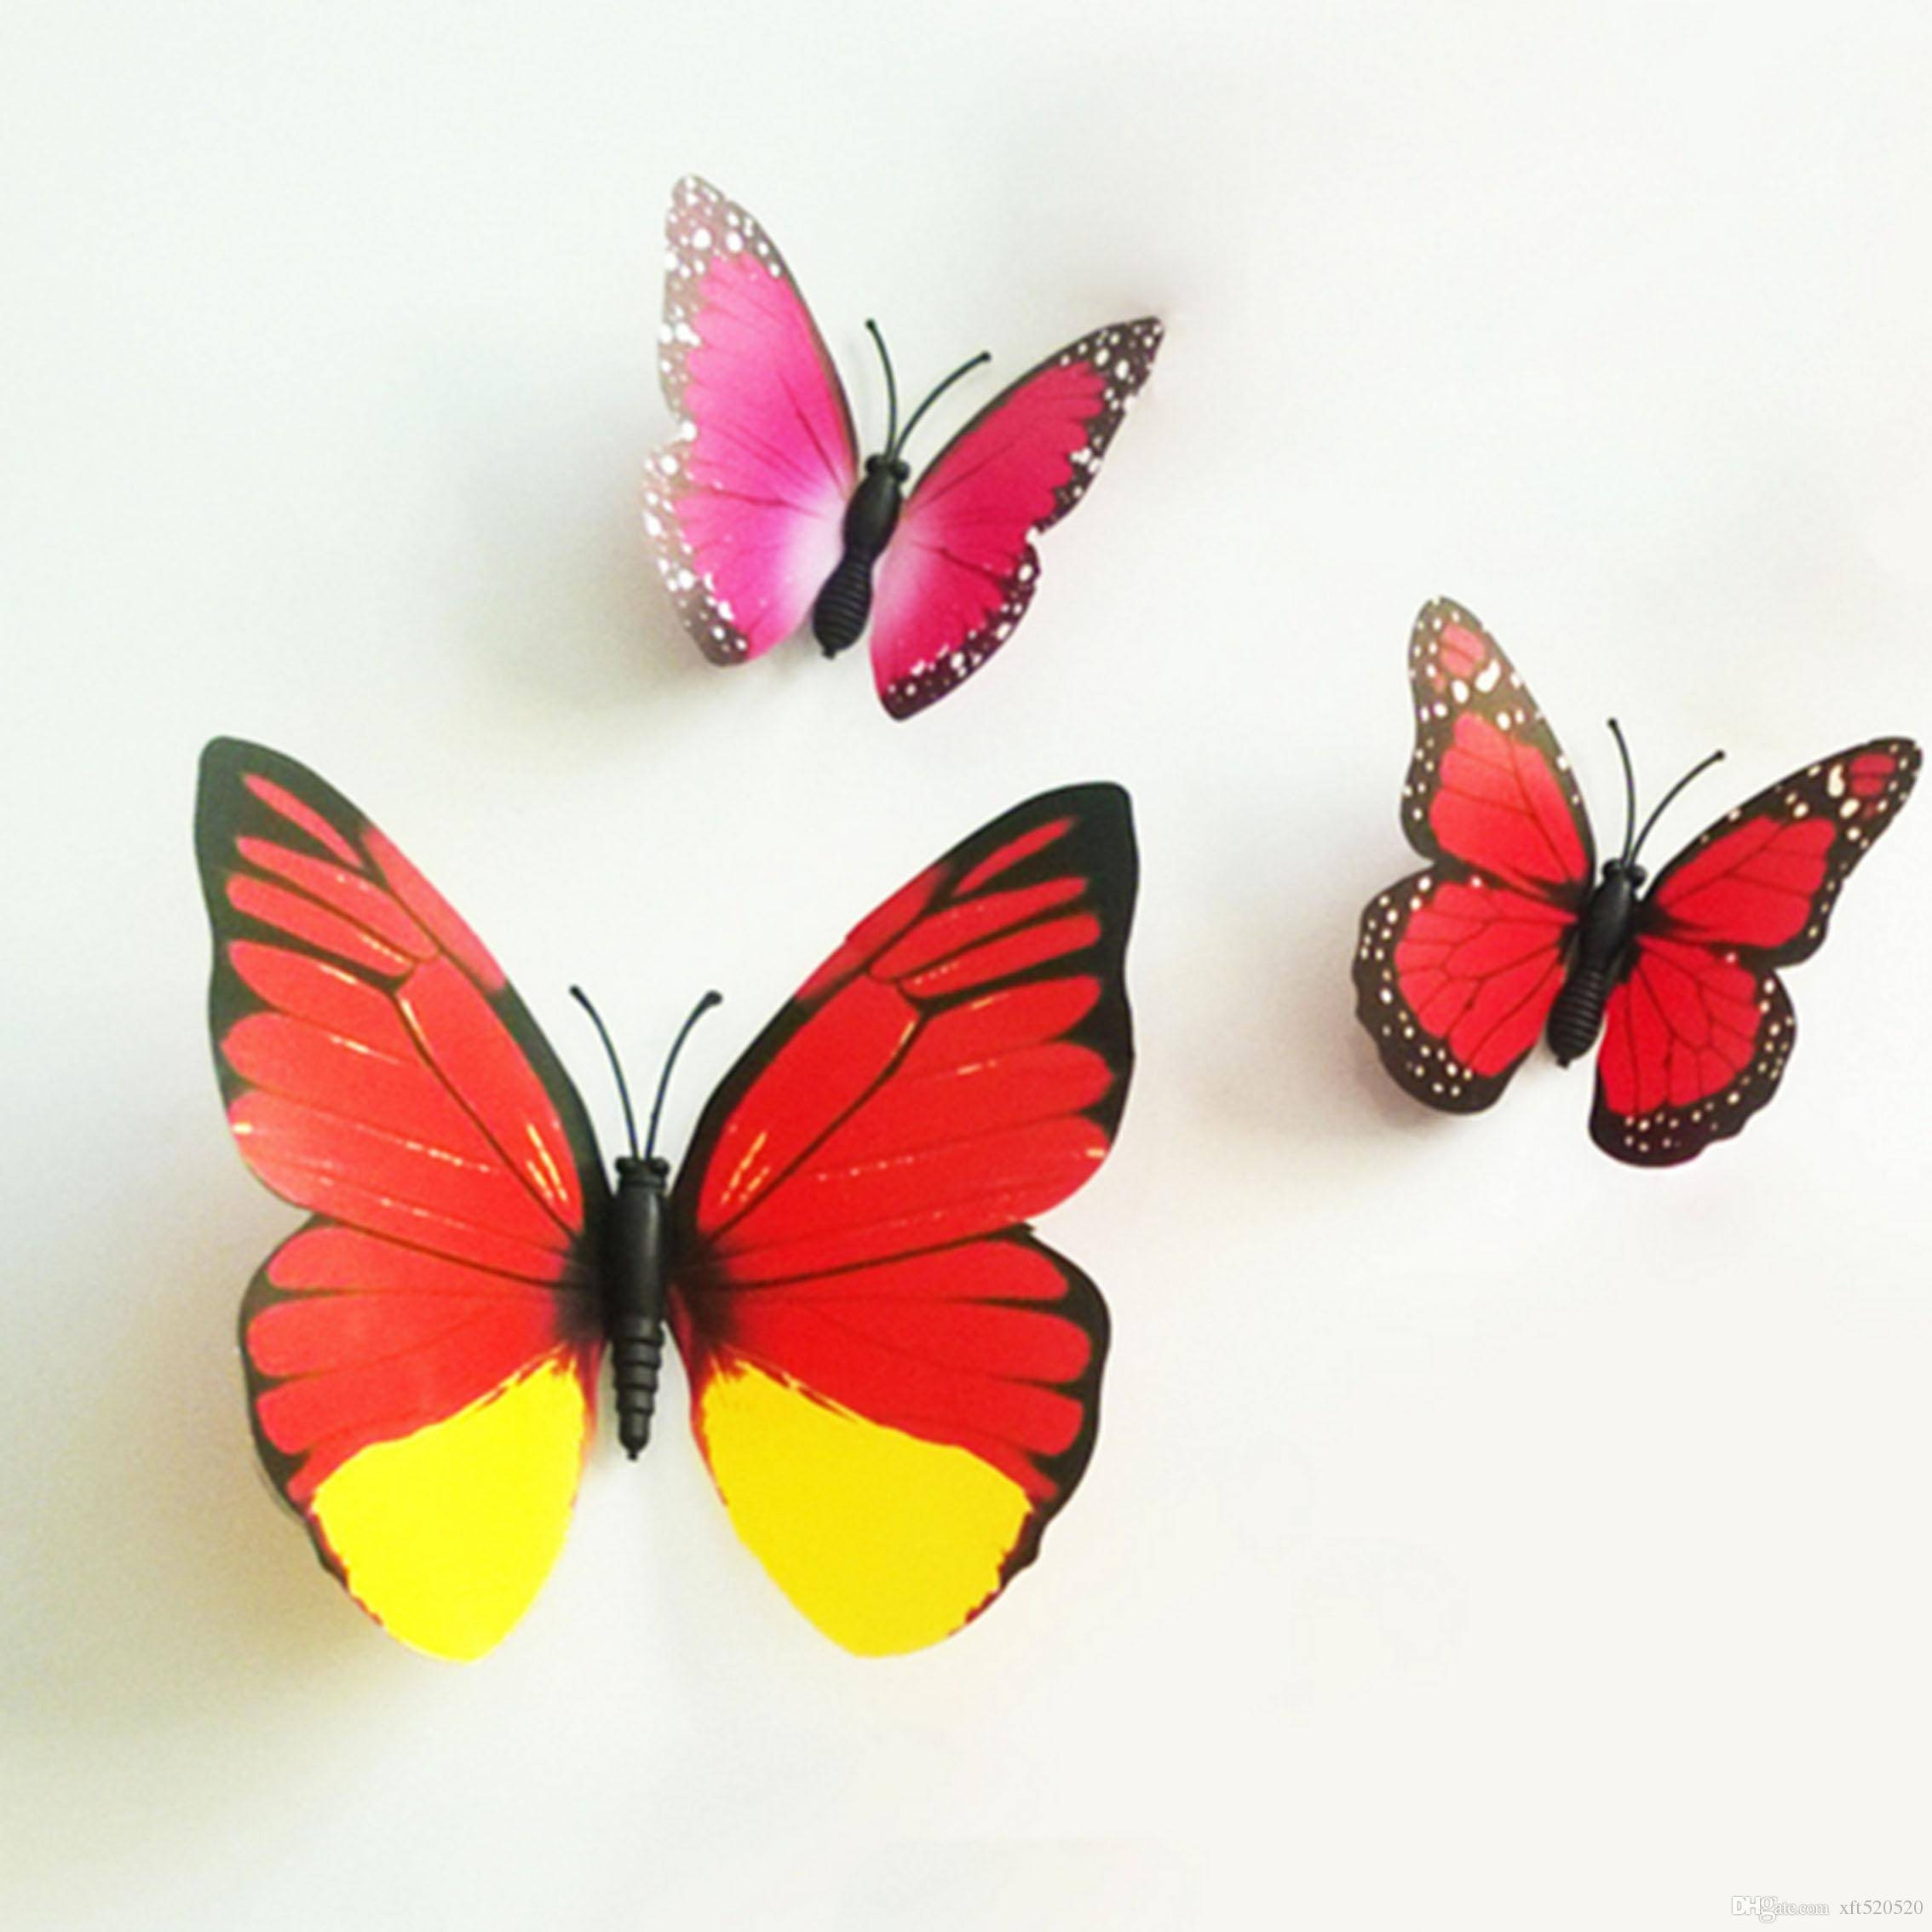 Colorful Design Art 3d Butterfly Wall Stickers Wall Decor Plastic Within Latest 3d Butterfly Wall Art (View 8 of 20)